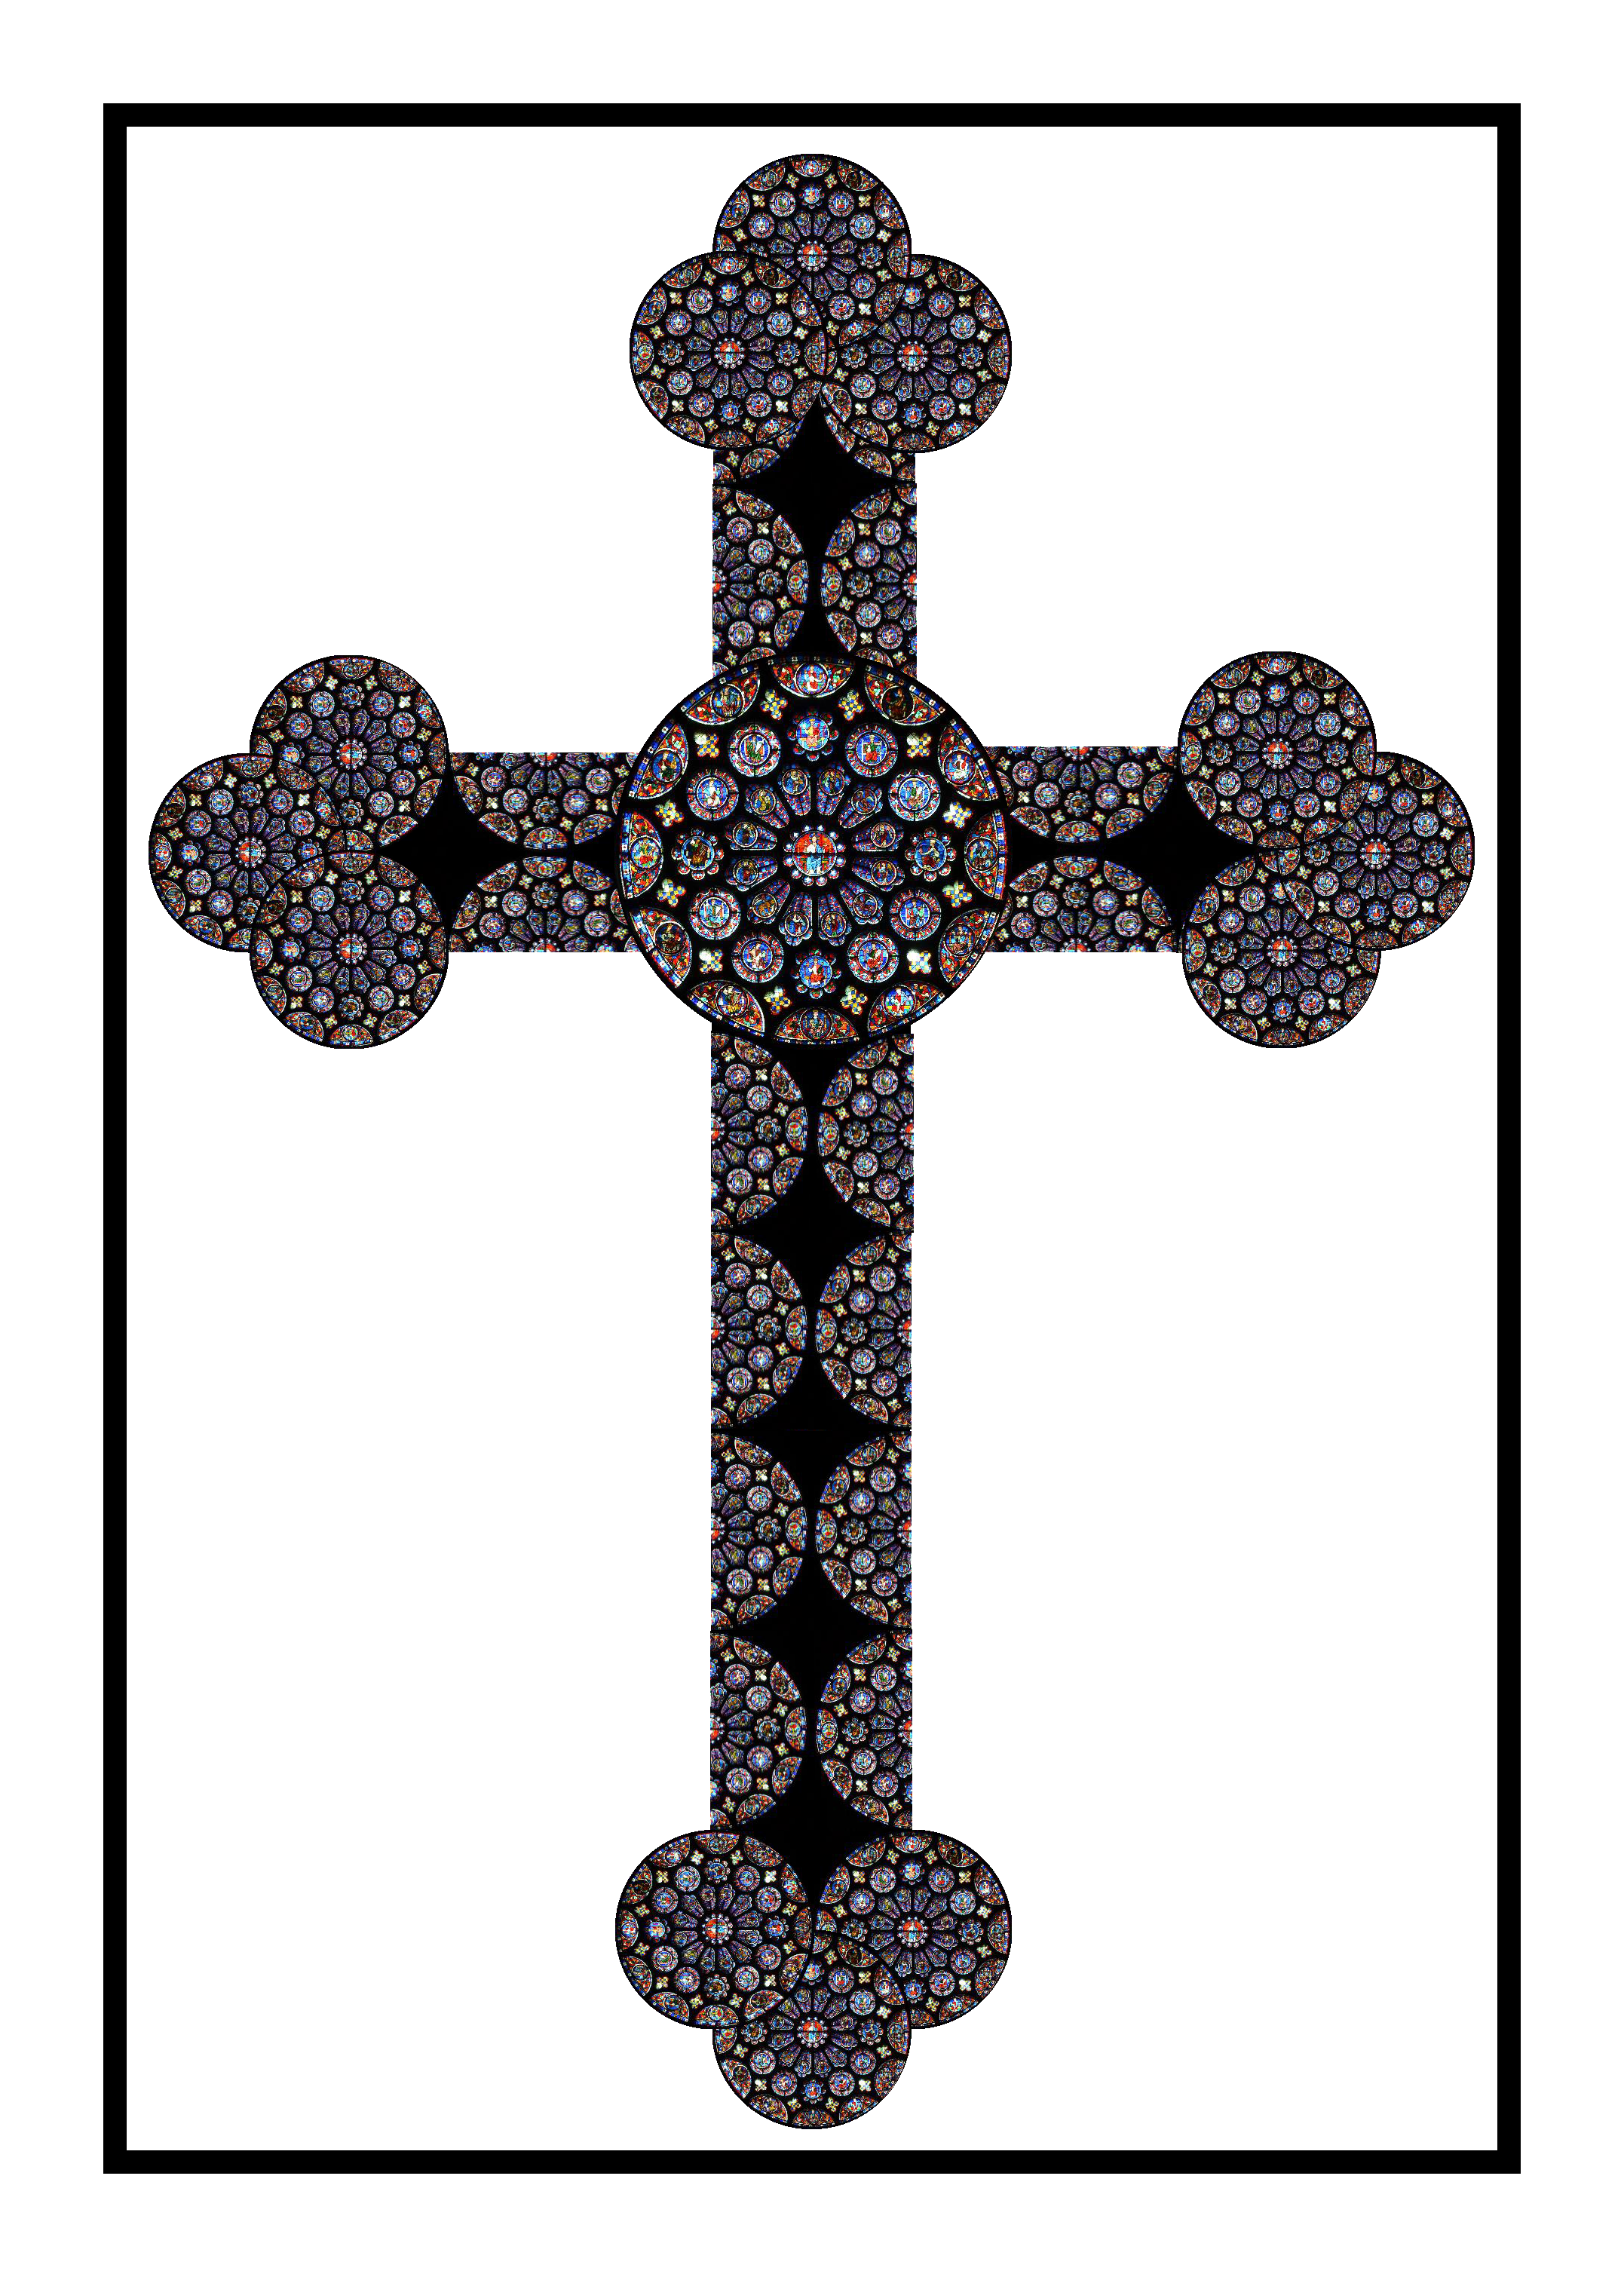 File:CHARTRES CROSS with black frame for WIKI SCIENCE entry.png ...